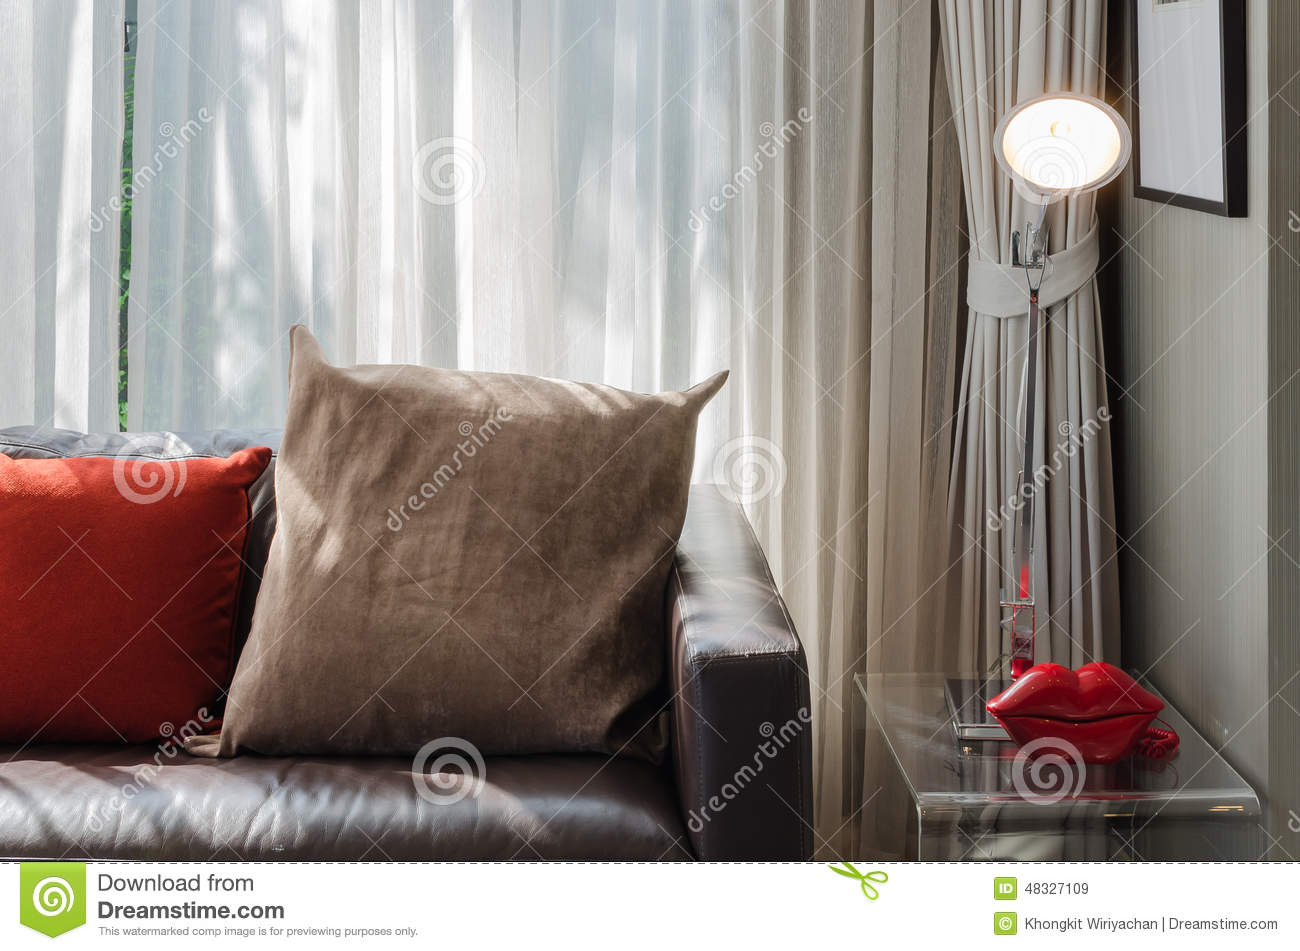 Tremendous Brown And Red Pillow On Brown Sofa Stock Image Image Of Alphanode Cool Chair Designs And Ideas Alphanodeonline